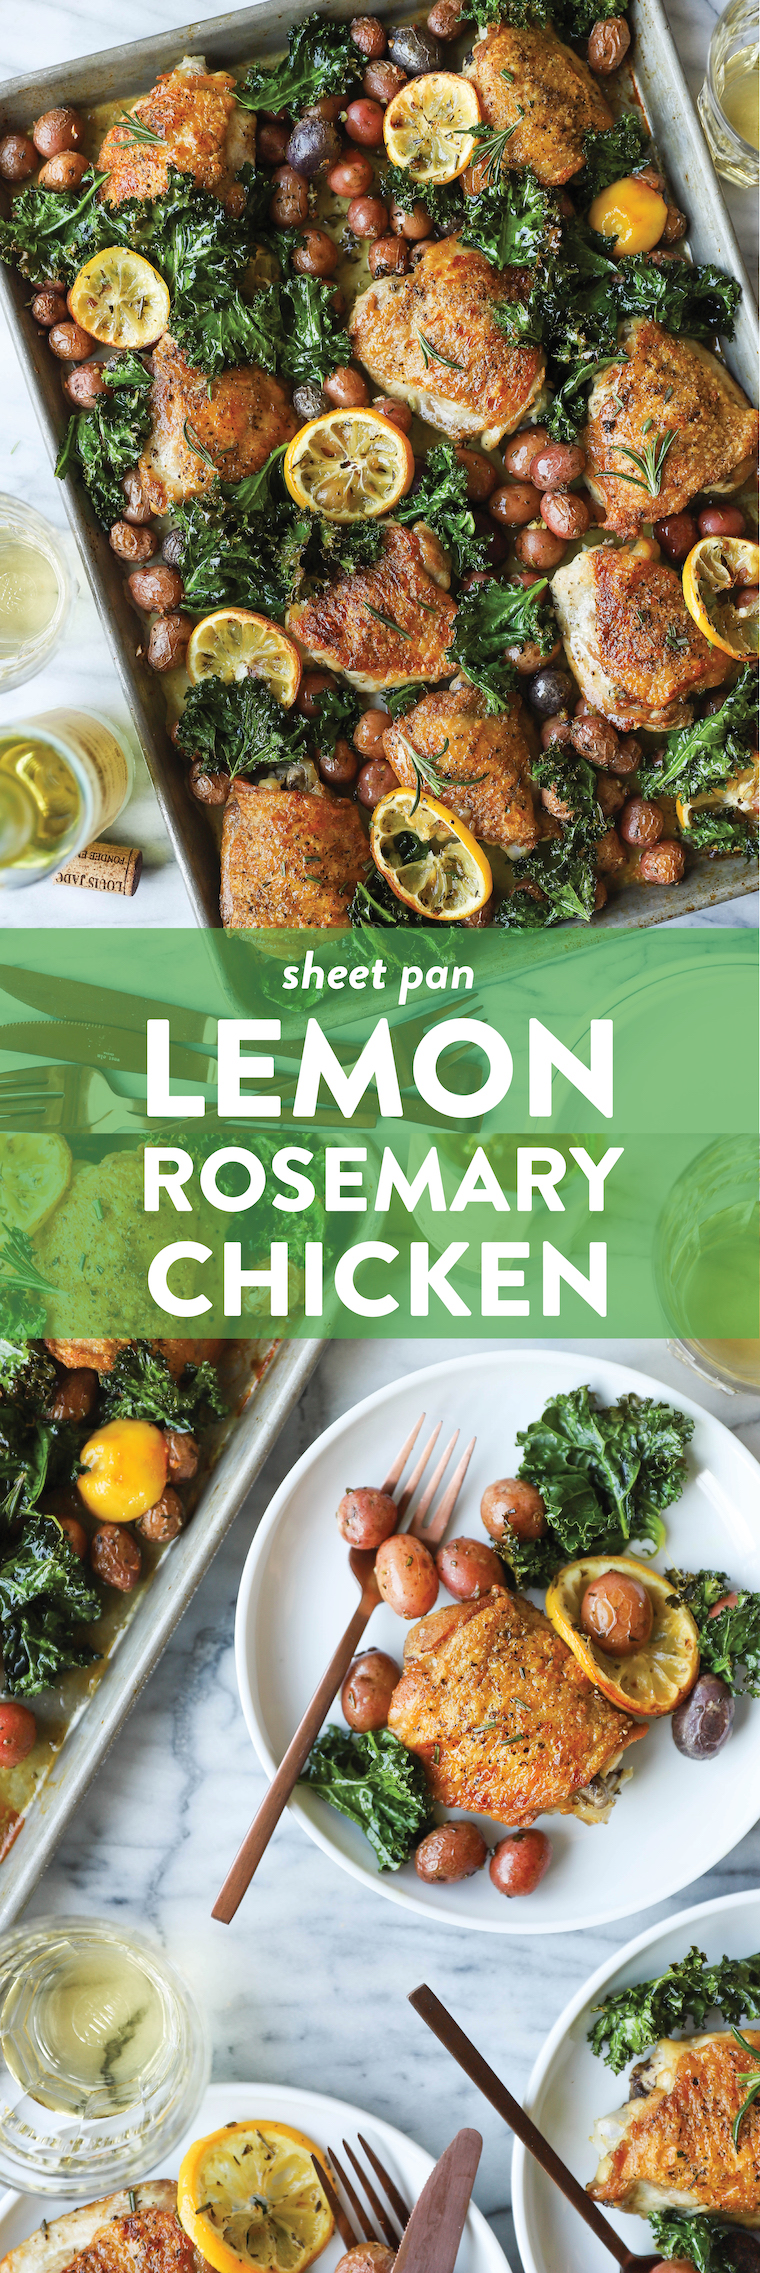 Sheet Pan Lemon Rosemary Chicken - SHEET PAN DINNER! Crispy, juicy chicken thighs with tender baby potatoes and crisped kale. So hearty, so good, so easy!